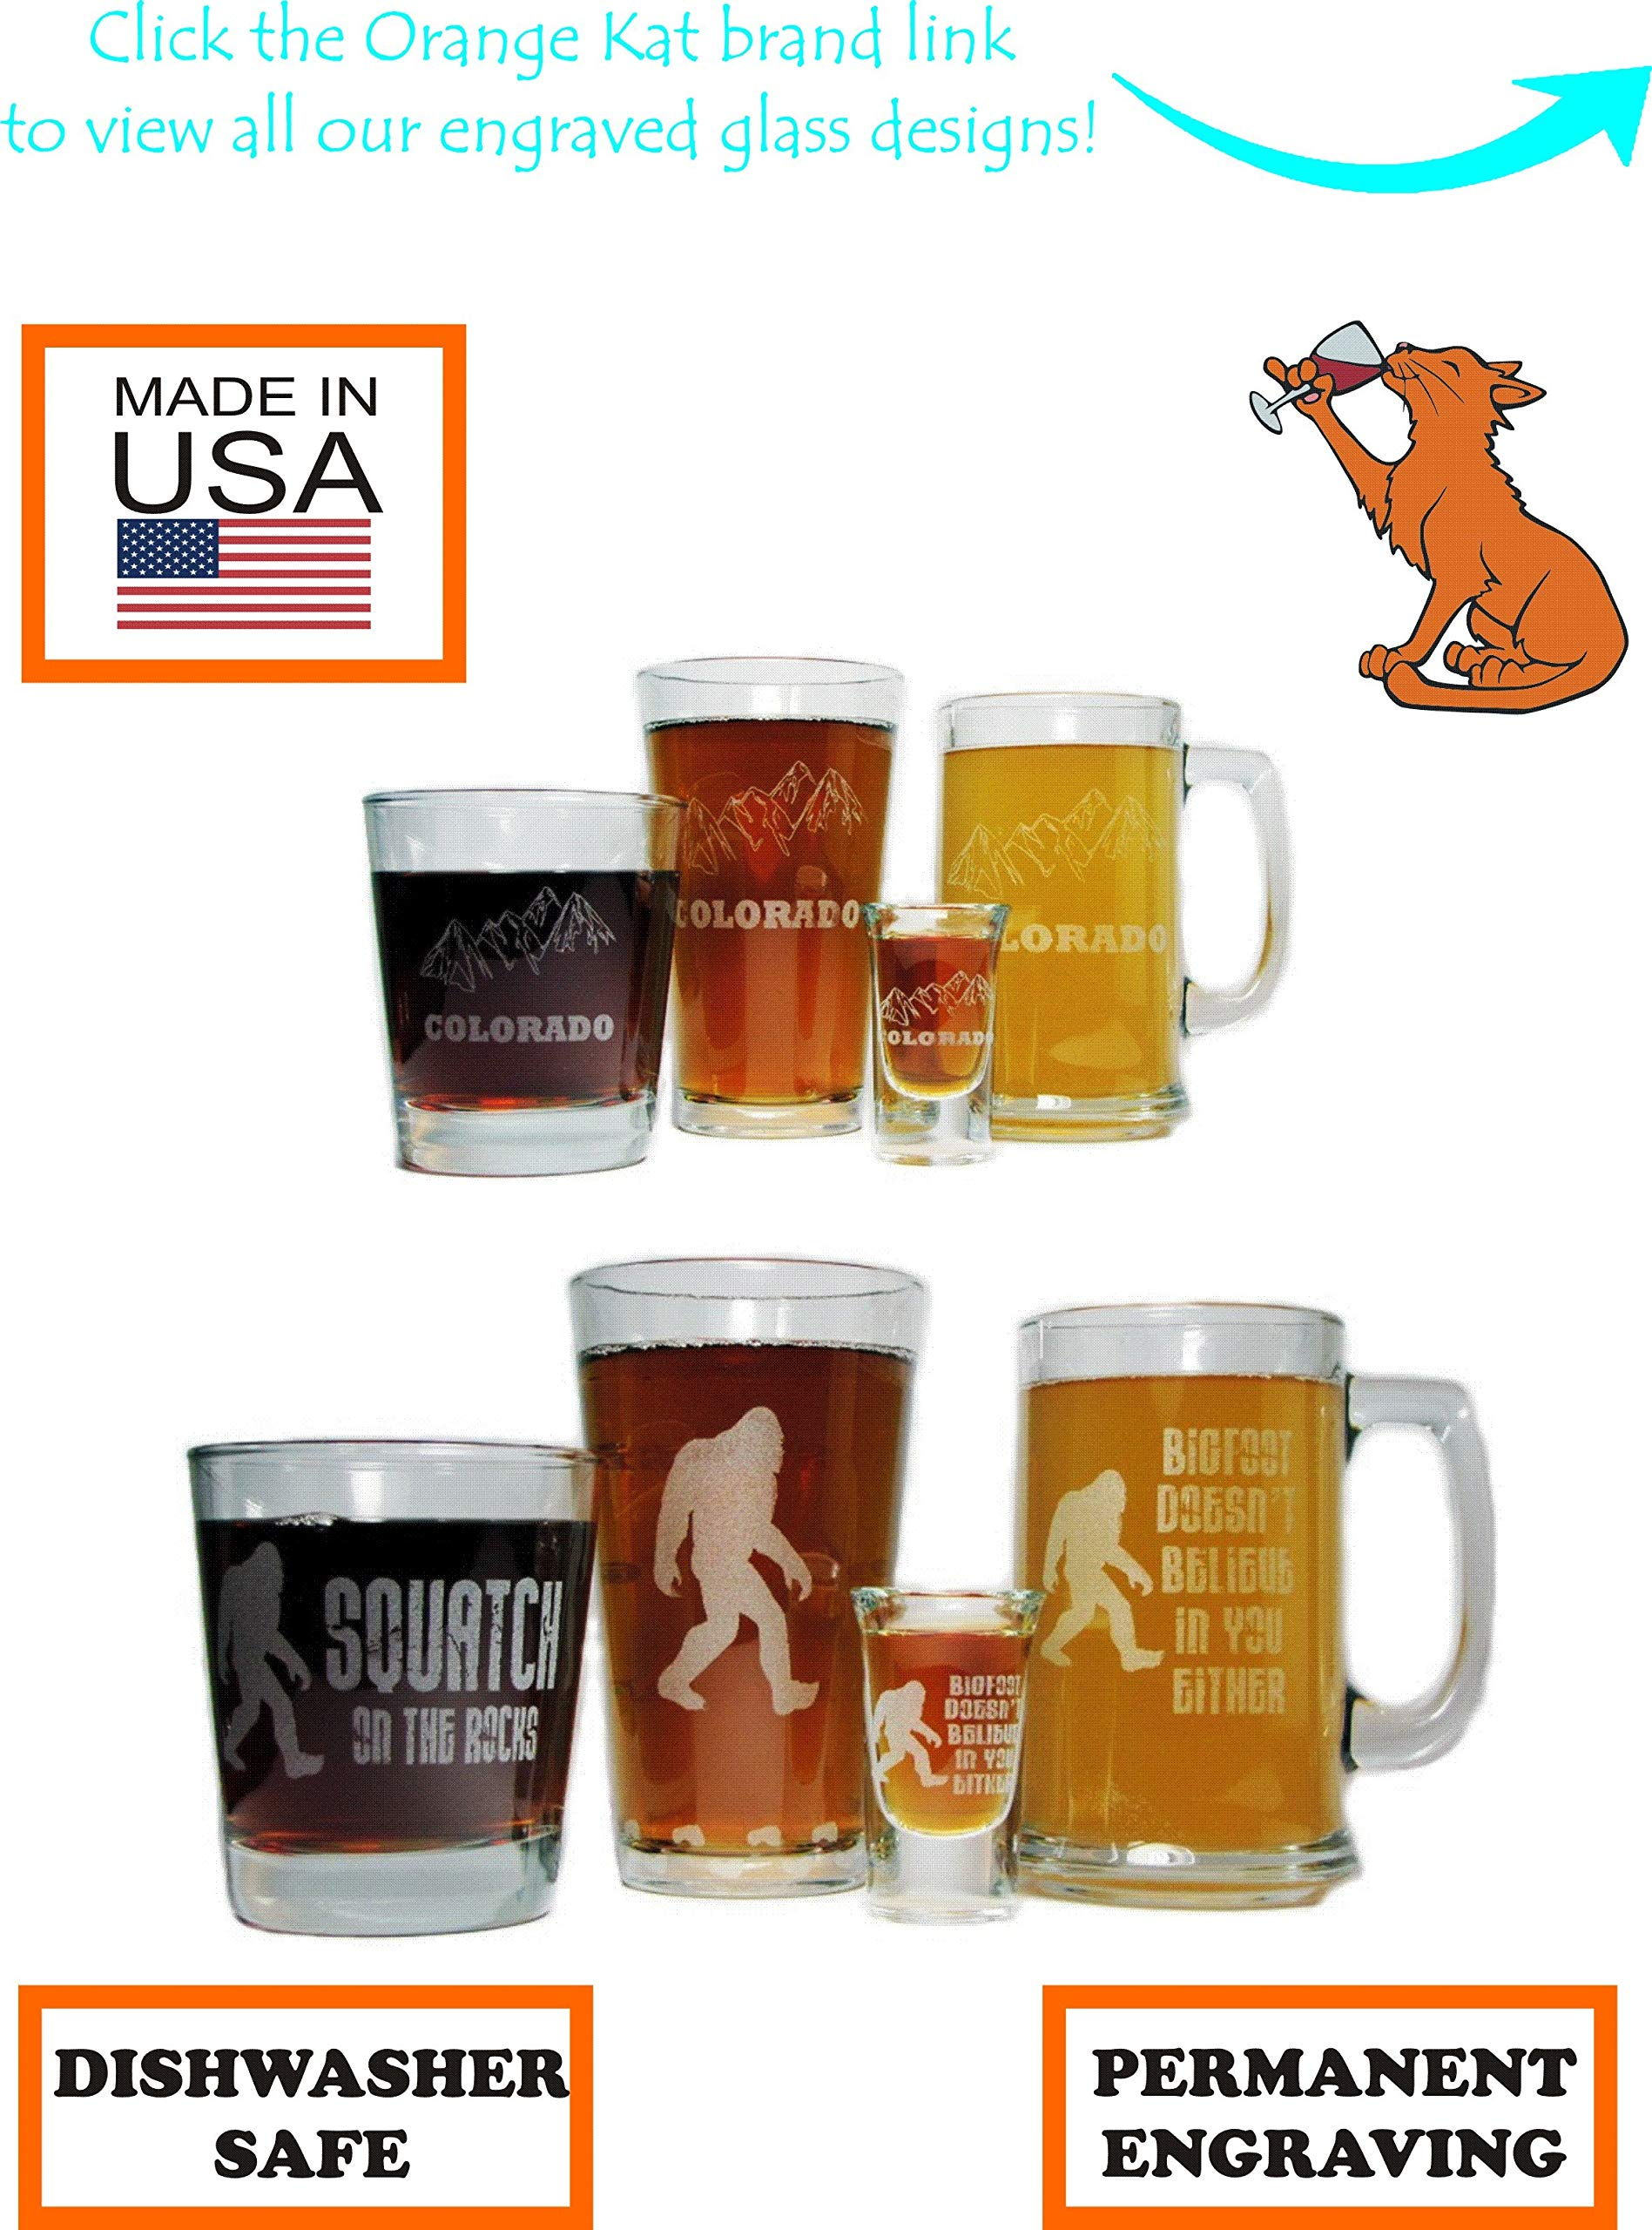 Grandpa's Sippy Cup Beer Mug and Pint Glass Gift Set - 15oz Engraved Beer Mug with 16oz Pint Glass-Permanently Etched - Fun & Unique Gift!